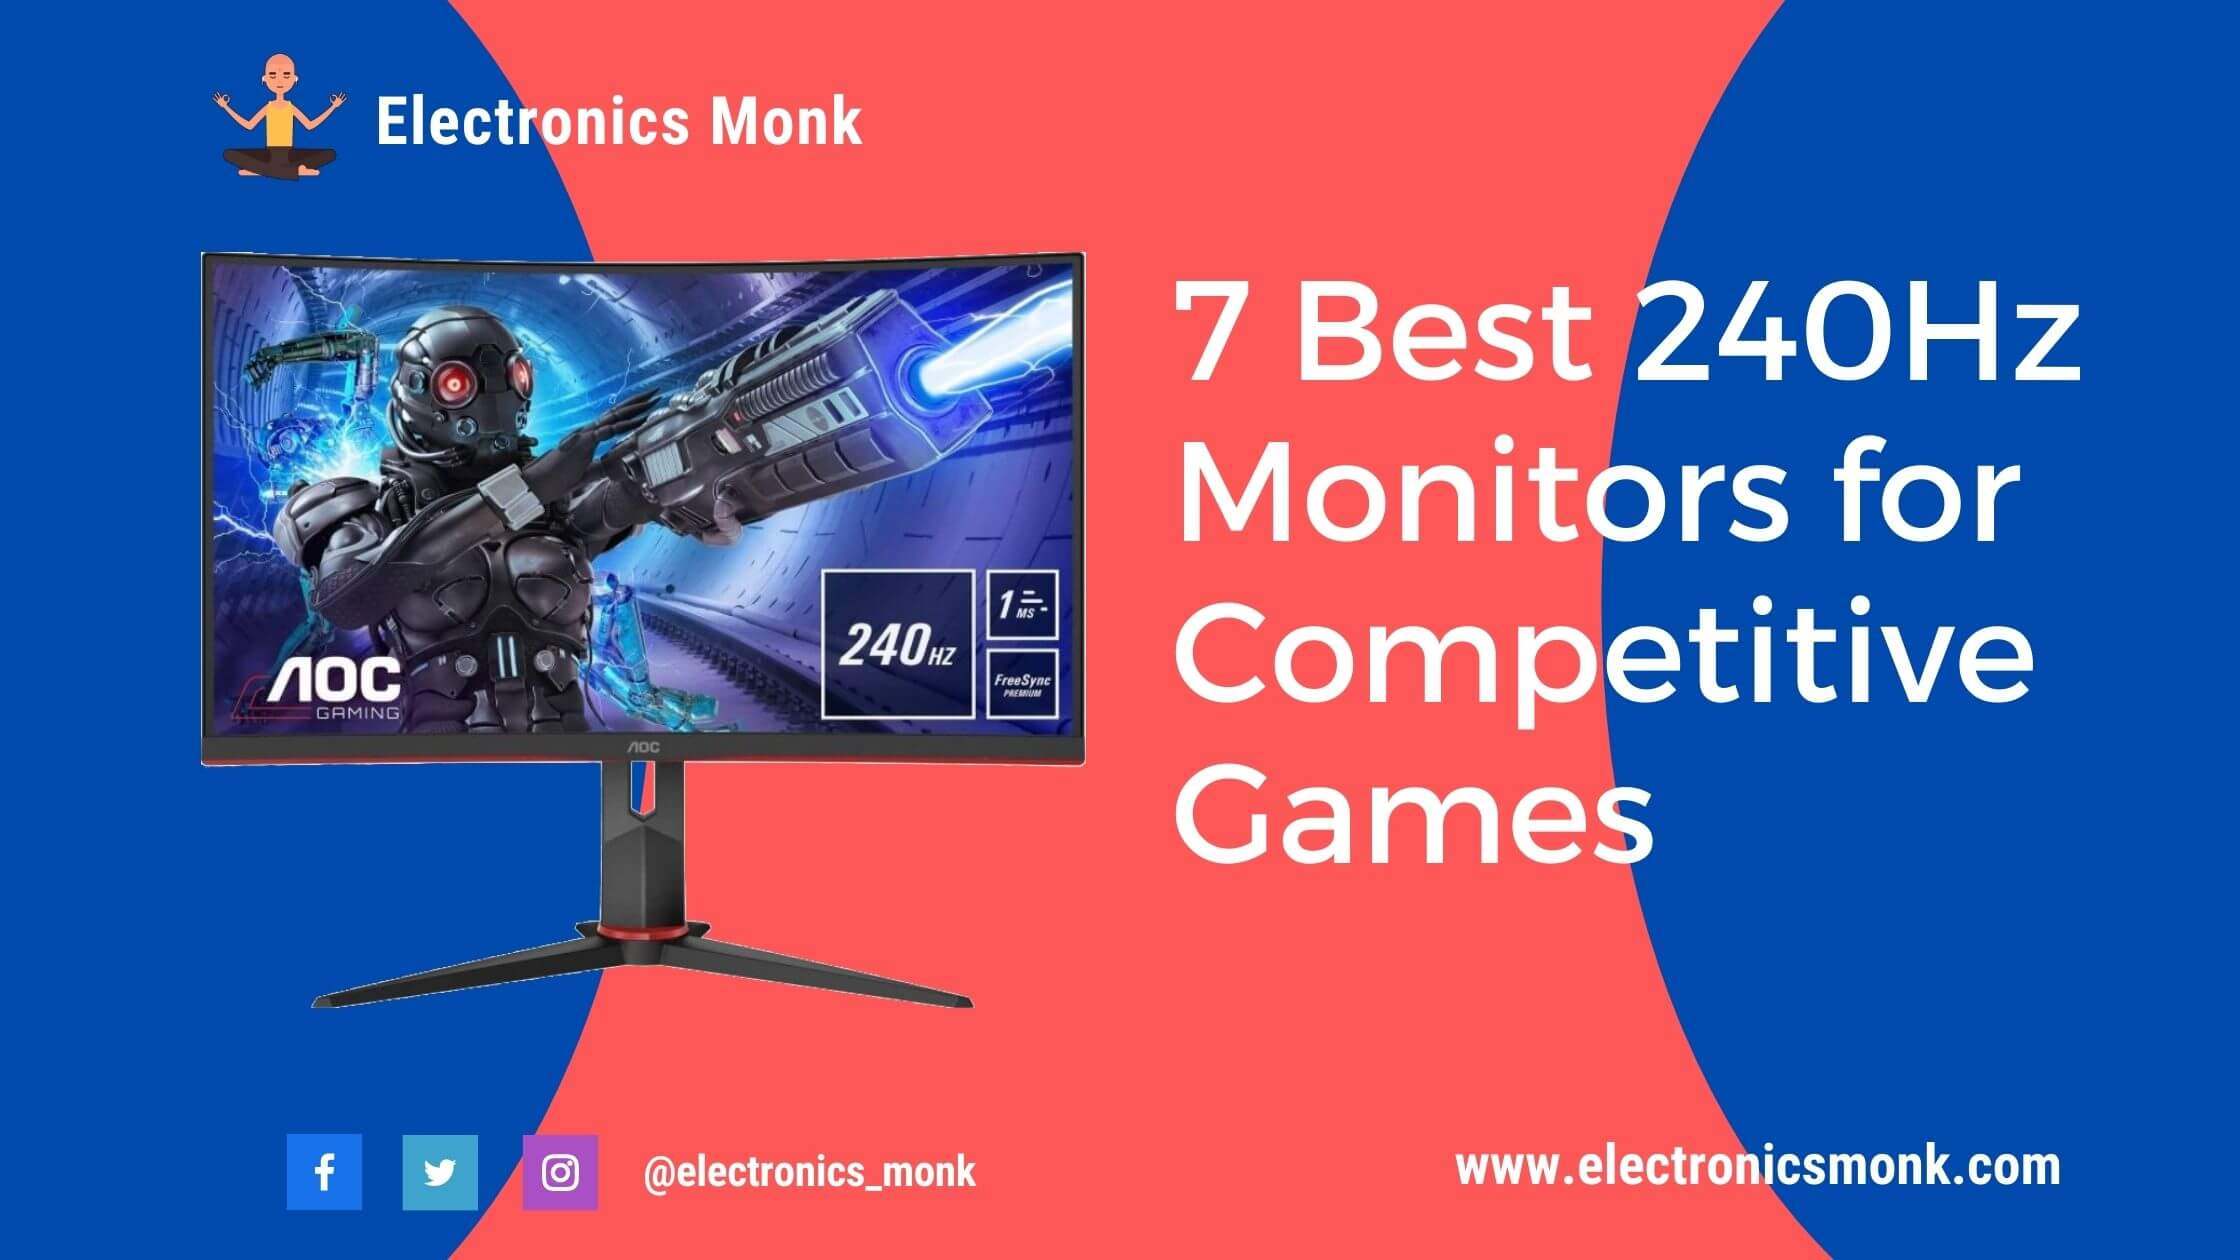 7 Best 240Hz Monitors for Competitive Games